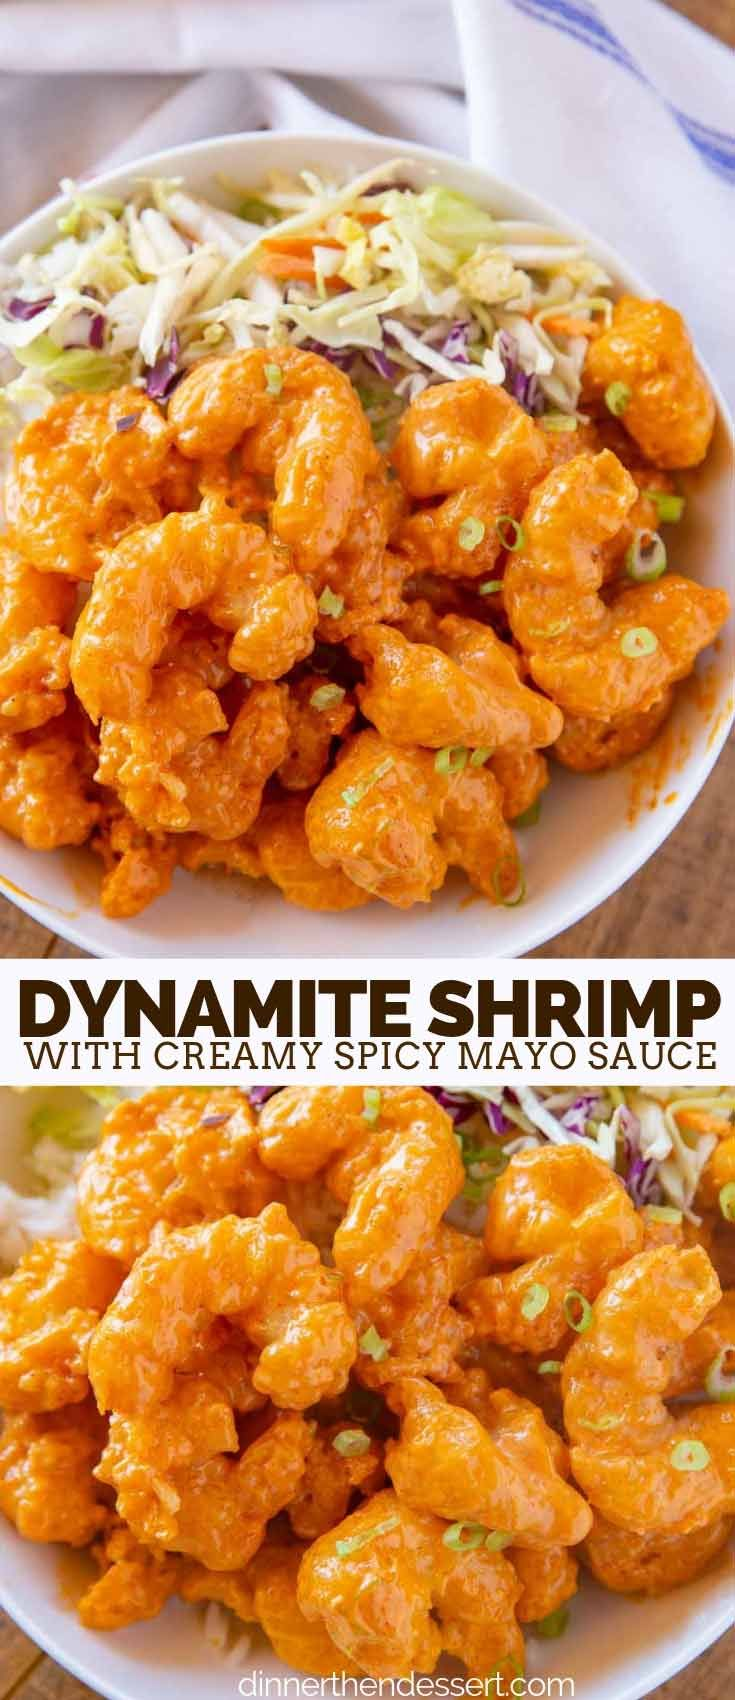 Dynamite Shrimp made with battered fried shrimp coated in a spicy mayo sauce is …